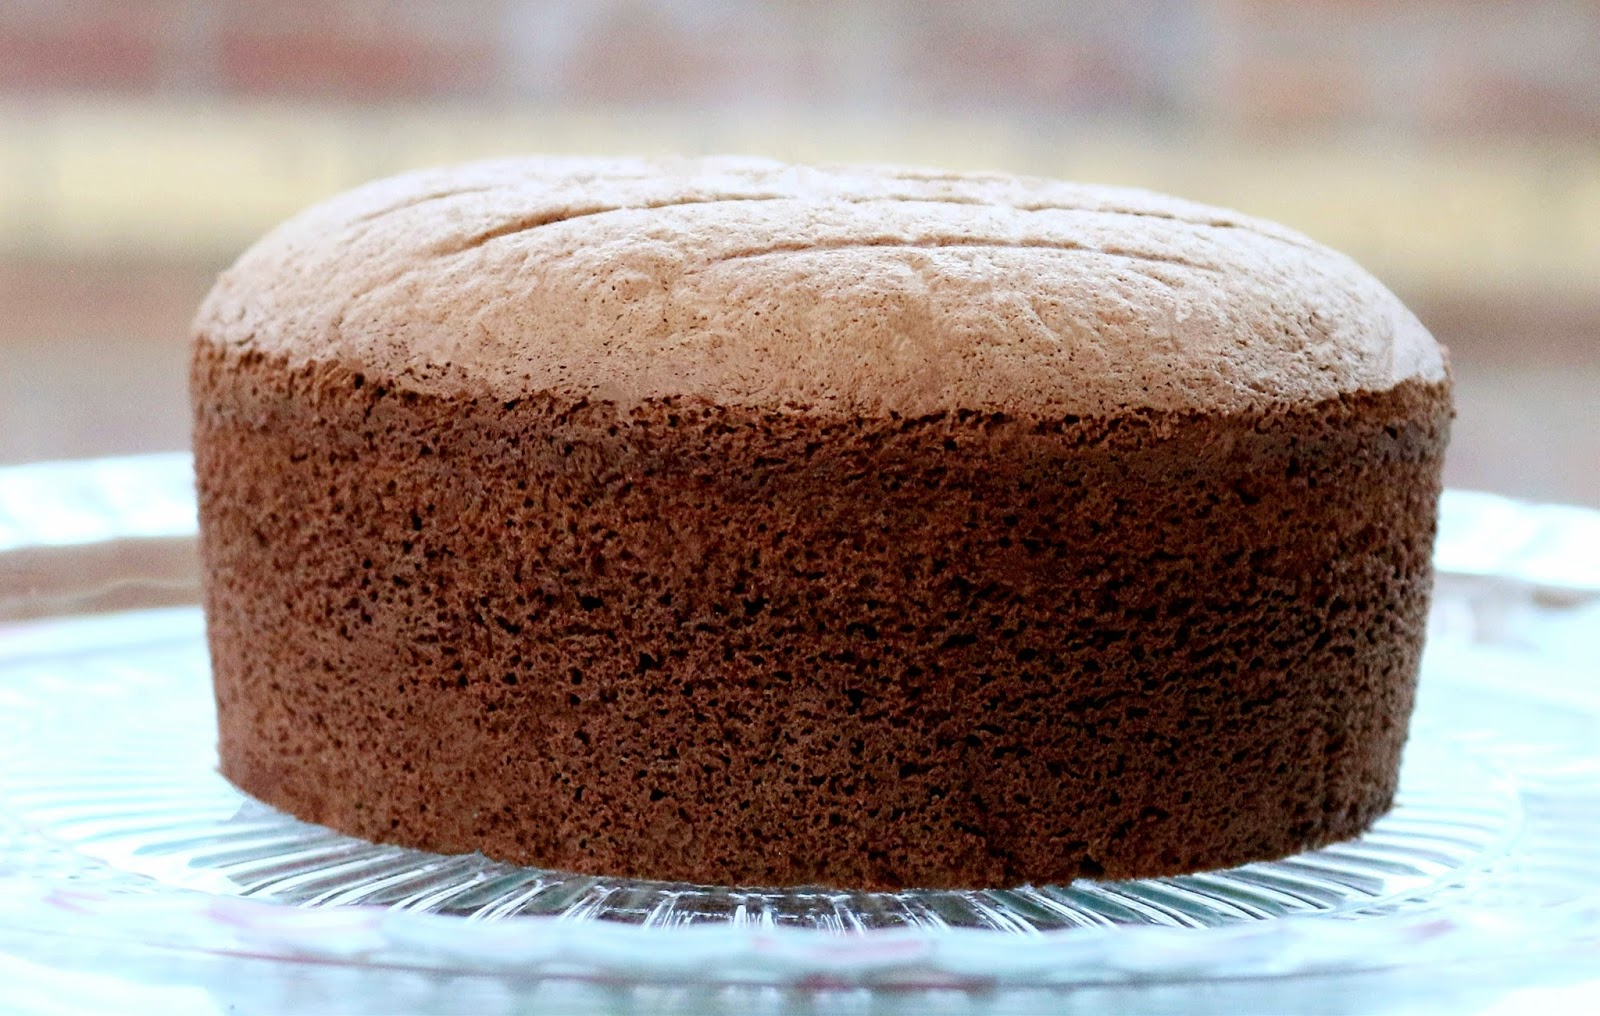 Josephine 39 s recipes chocolate sponge cake with ganache for Chocolate sponge ingredients